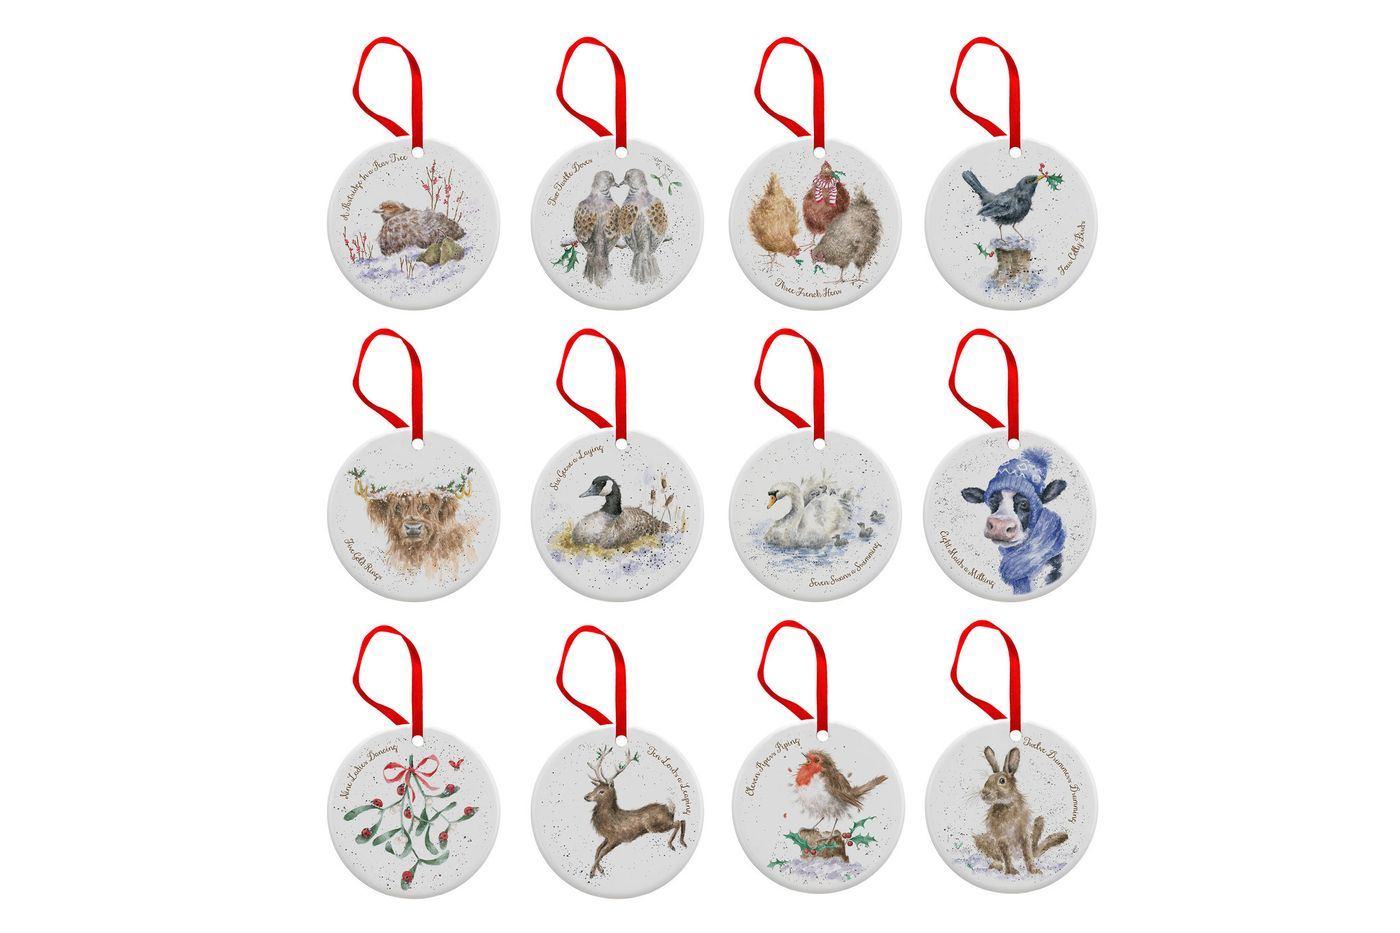 Royal Worcester Wrendale Designs Bauble Set of 12 Christmas Disc Decorations thumb 1